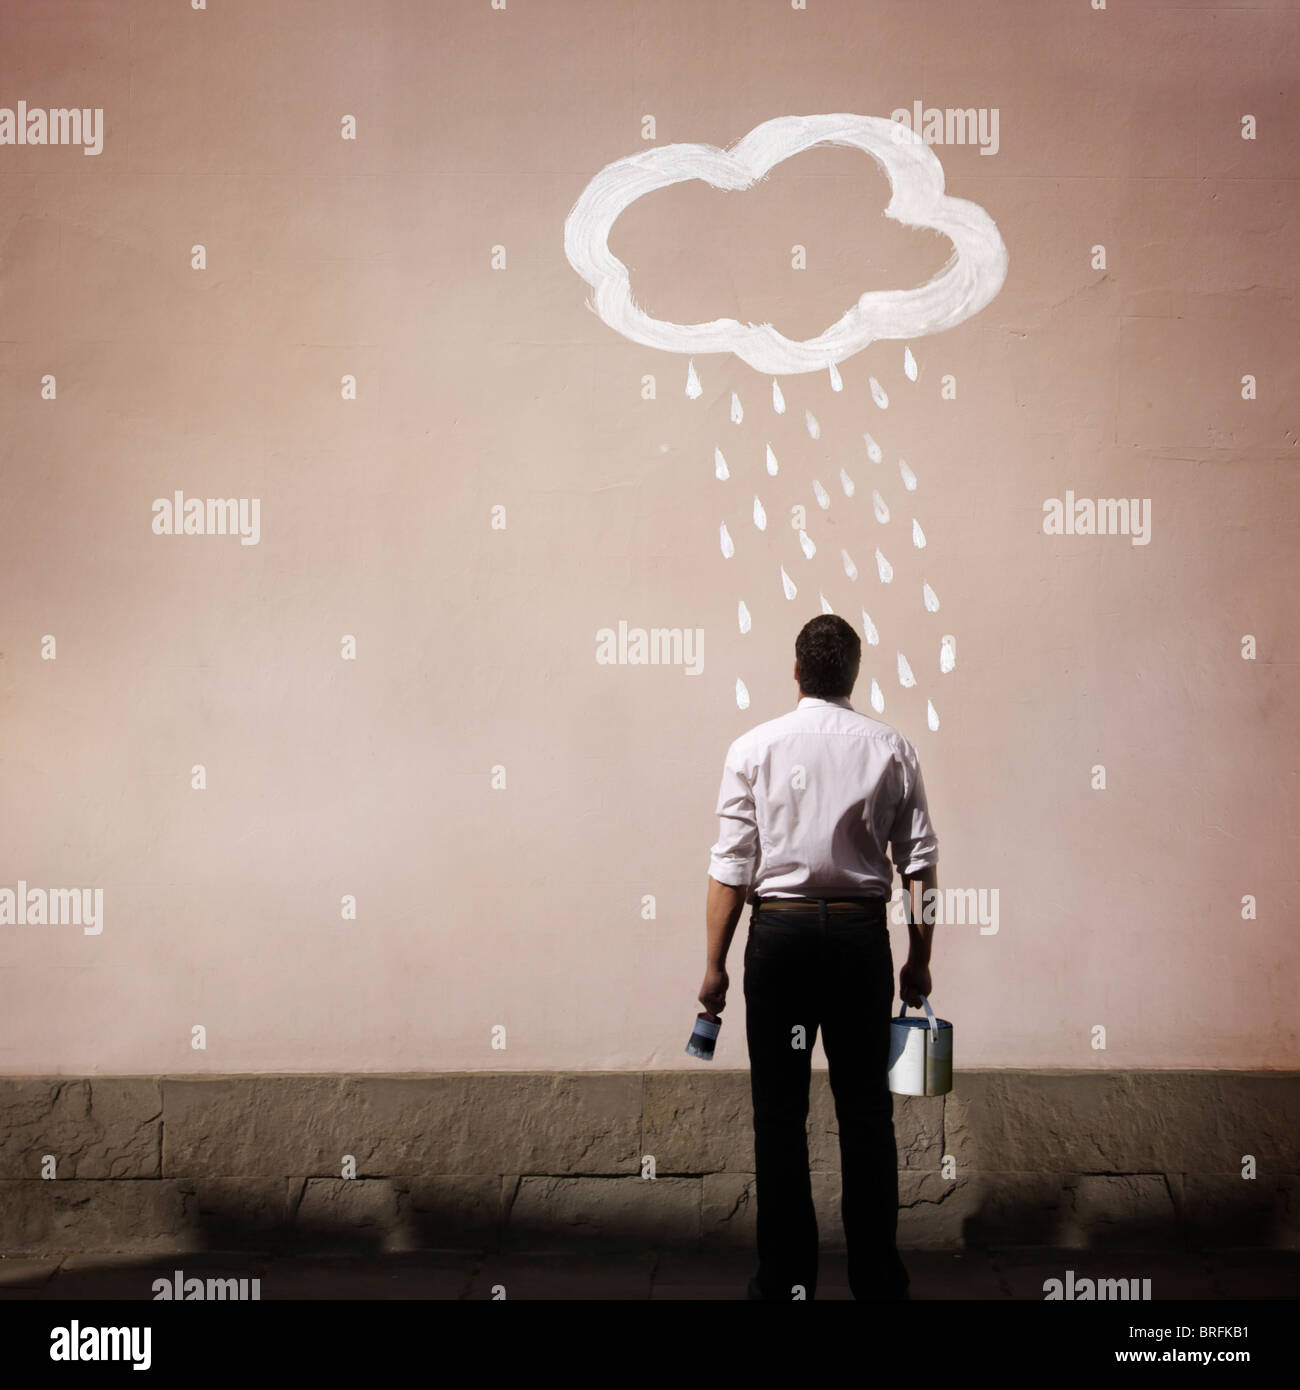 man with rain cloud painted on a wall - Stock Image